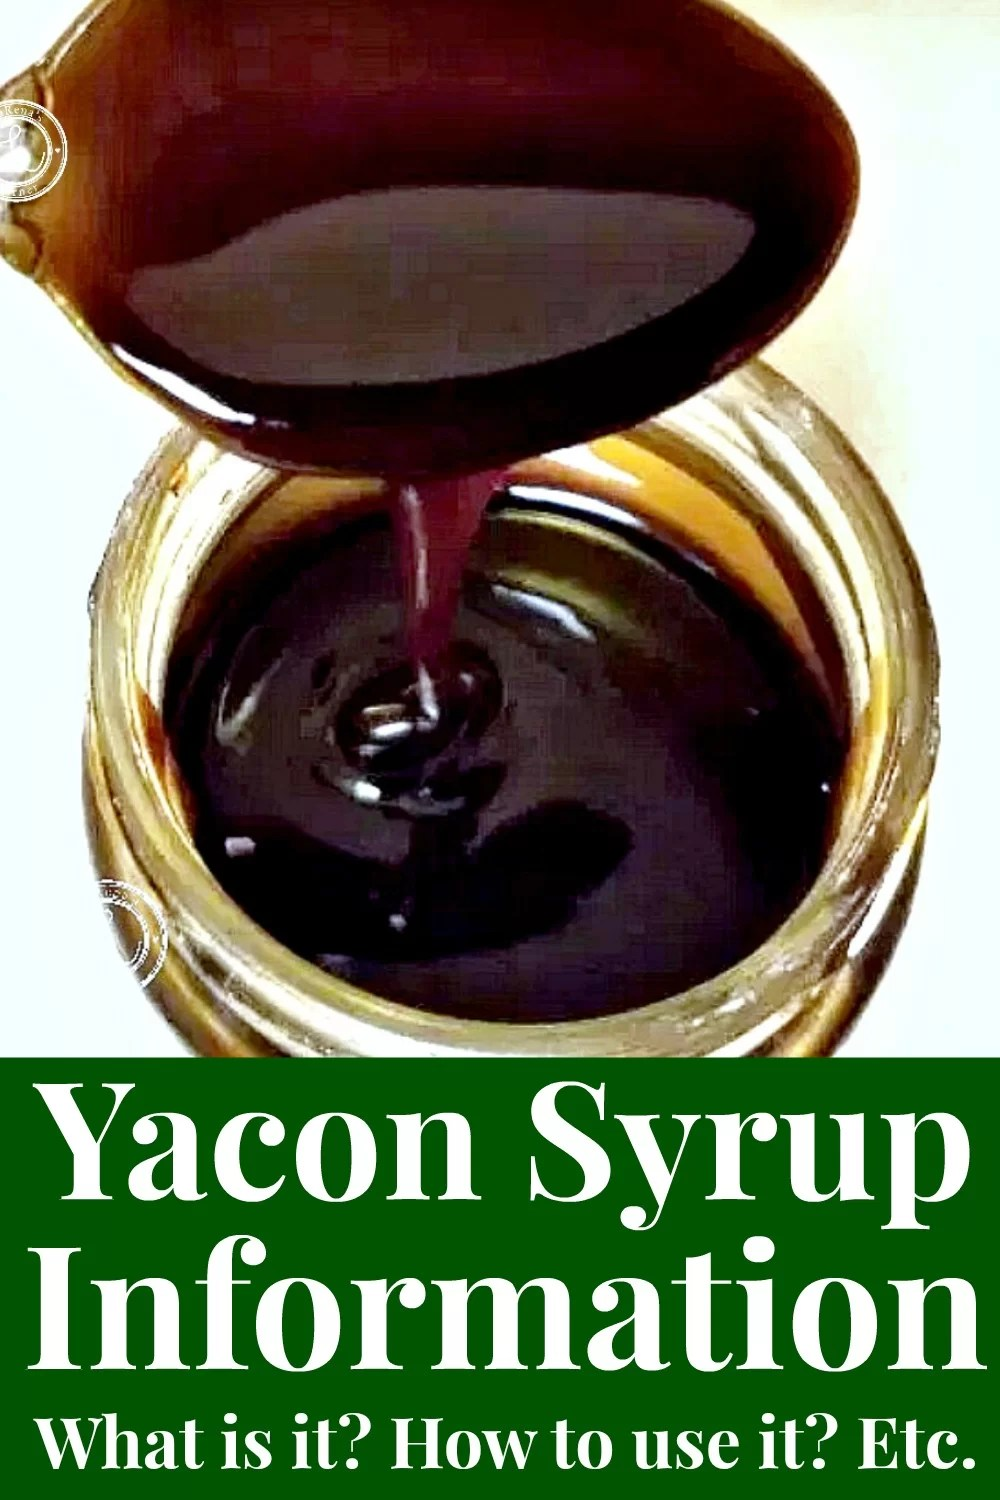 A spoon dripping Yacon Syrup